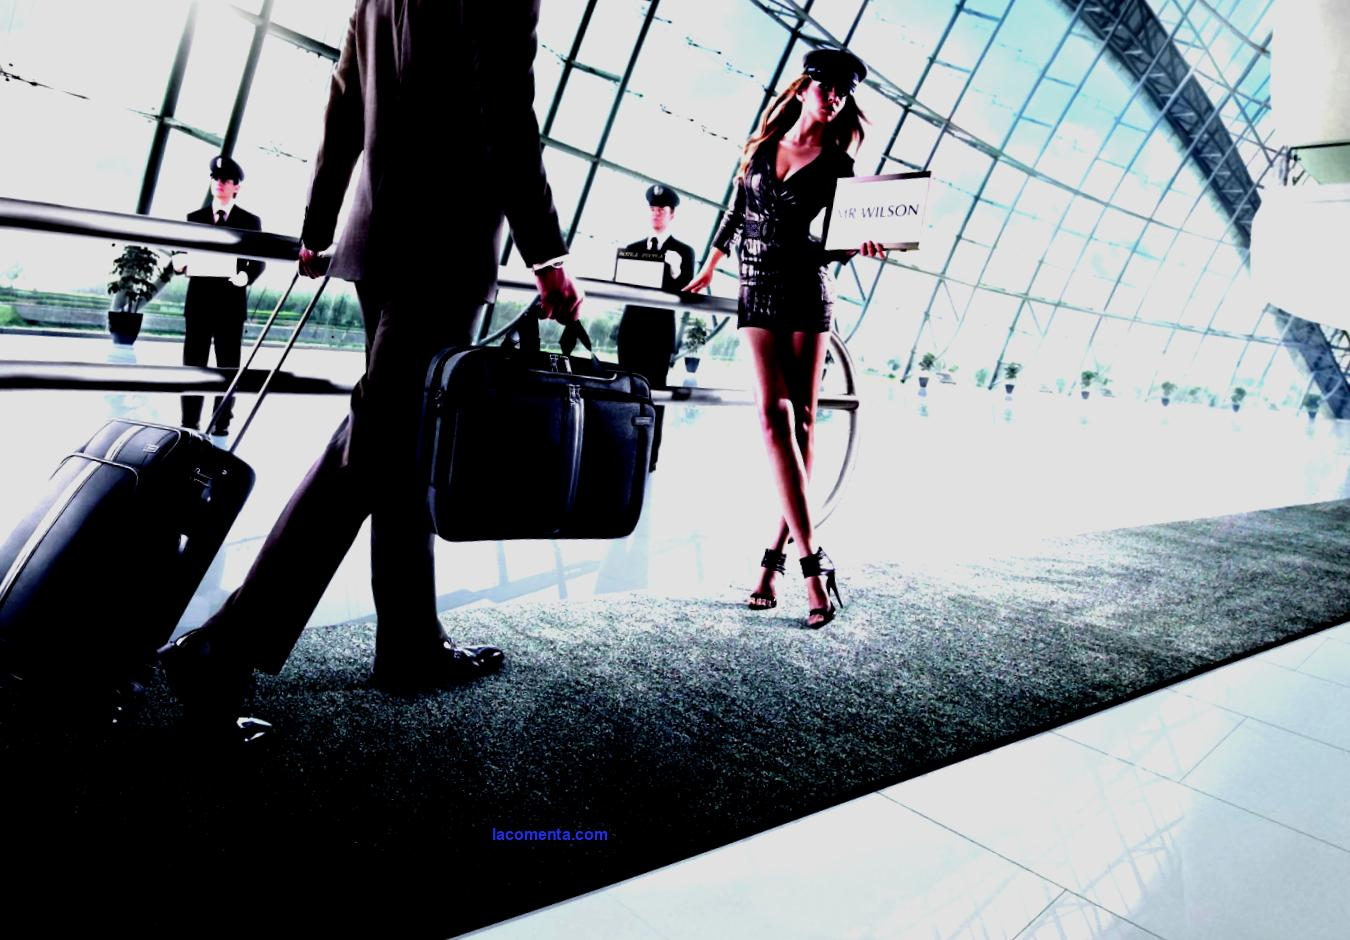 Business tourism in China